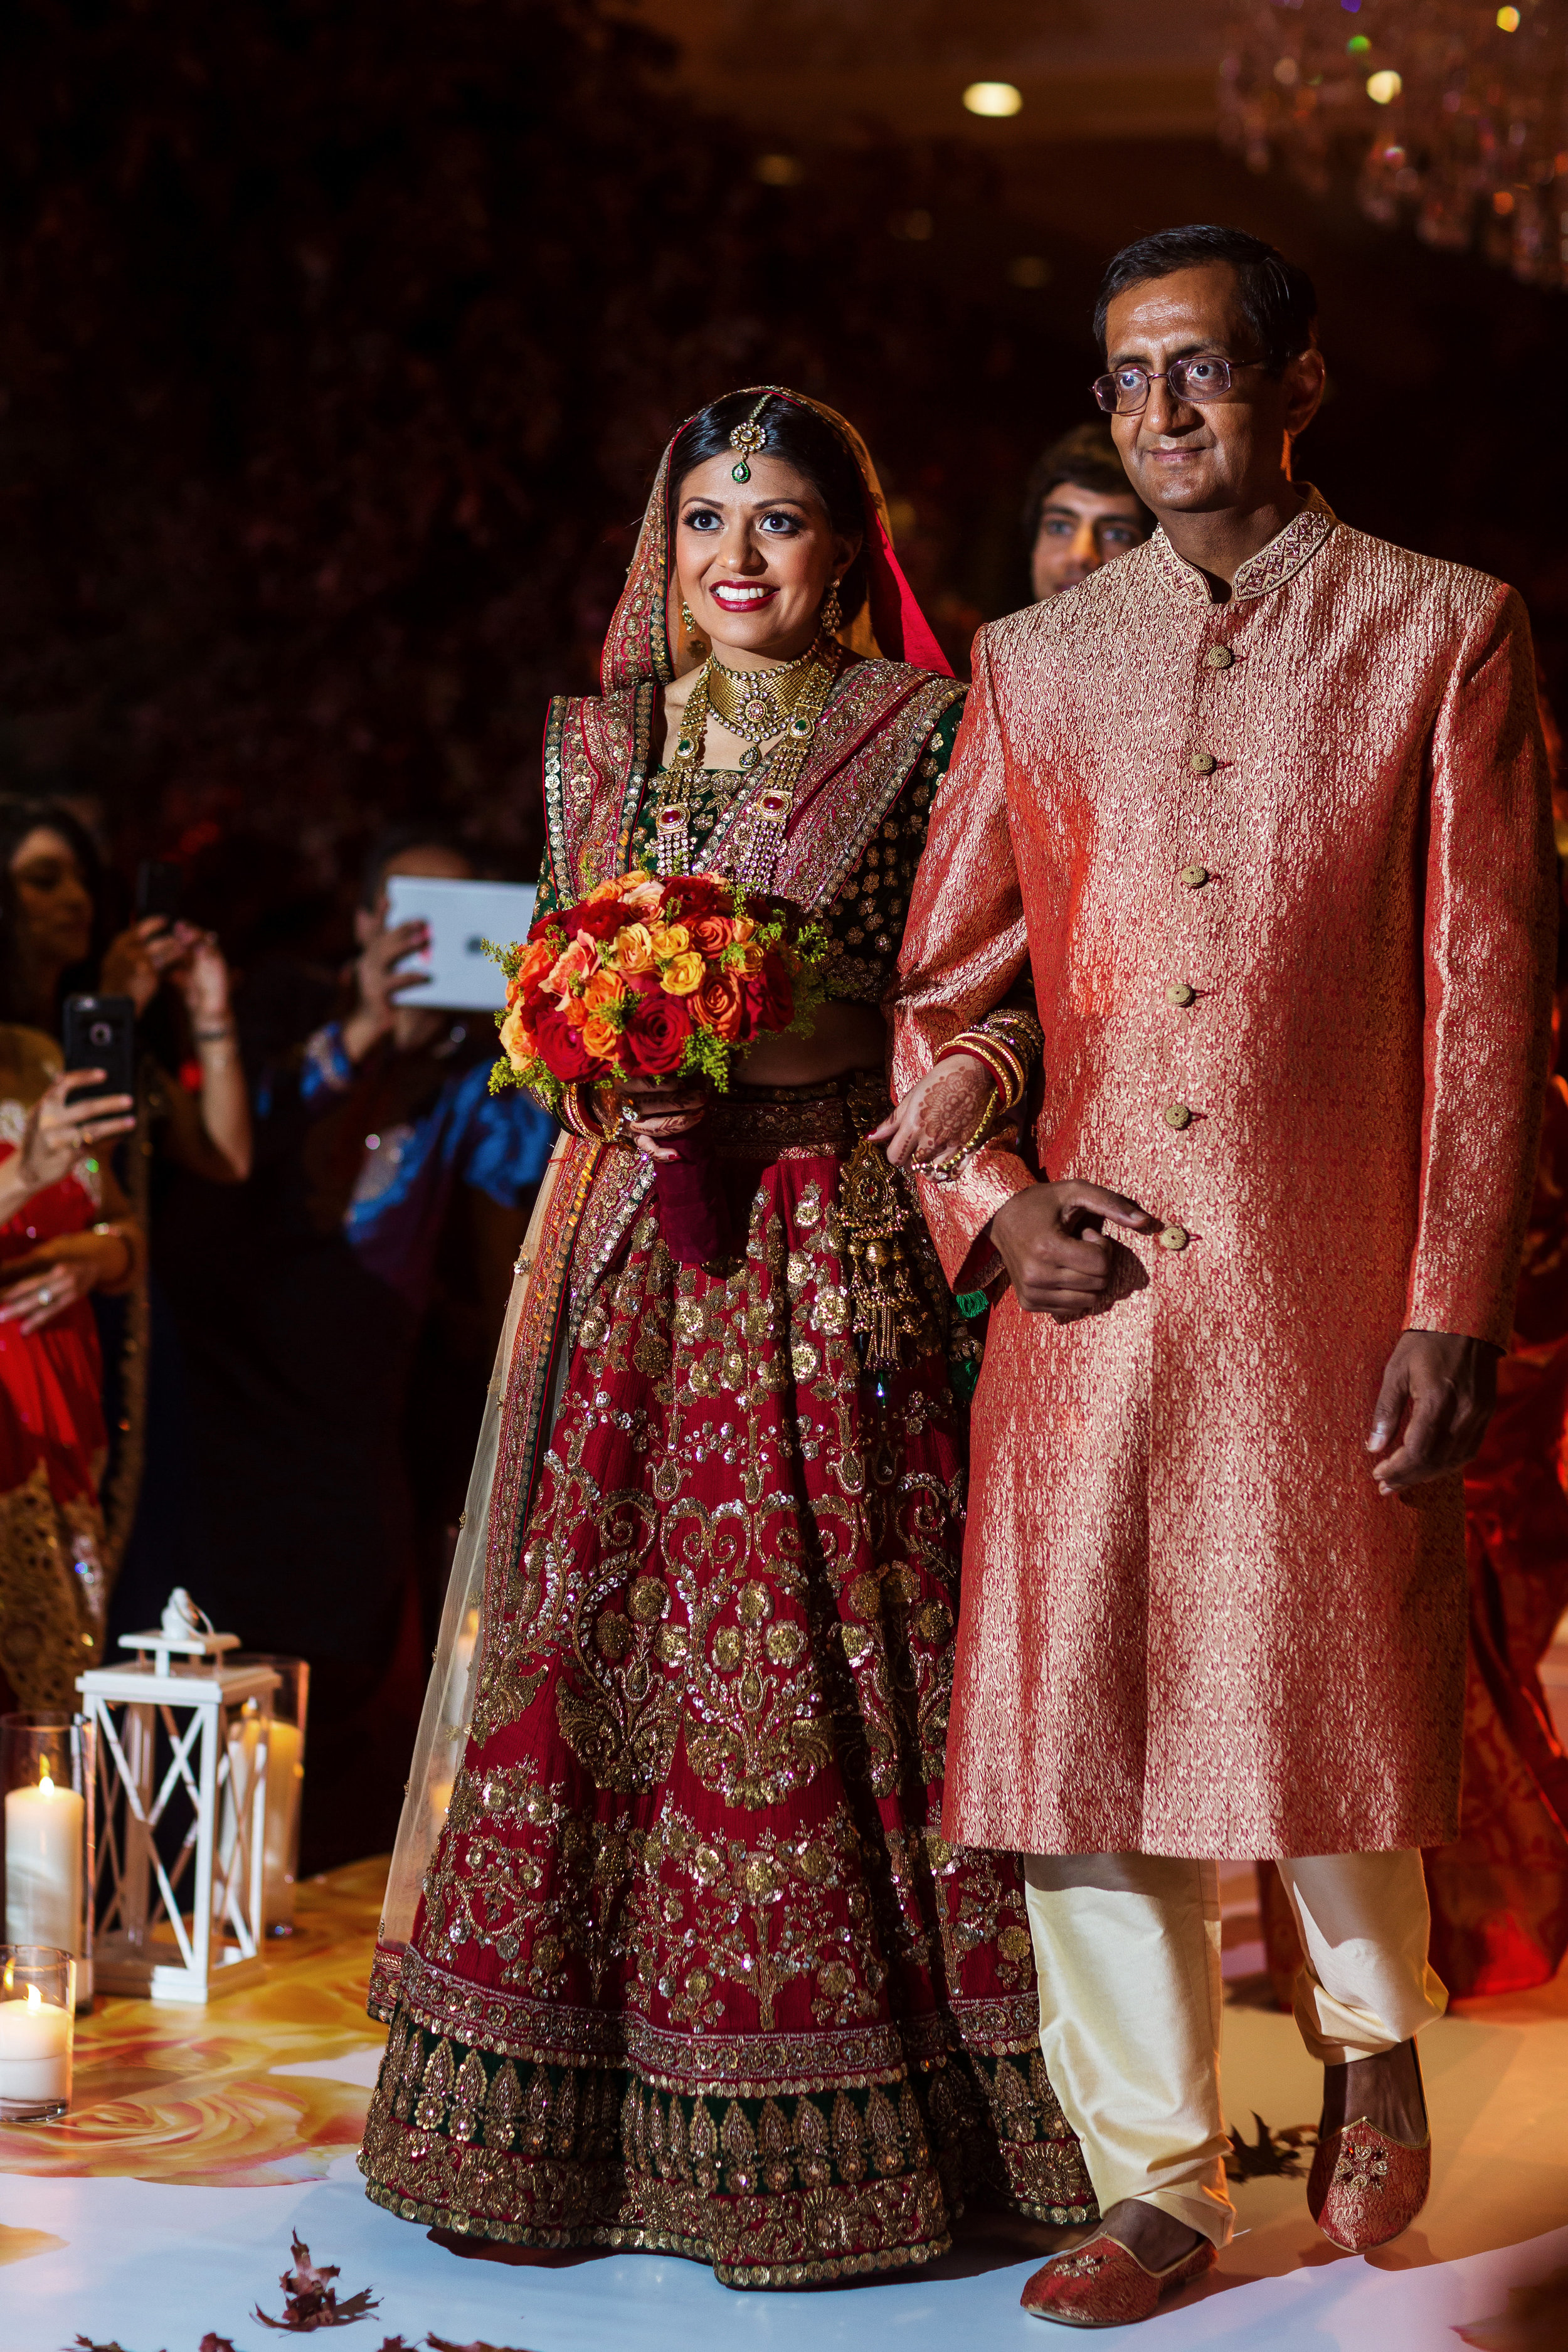 Uchi-Aashish-05-Wedding-0035.JPG